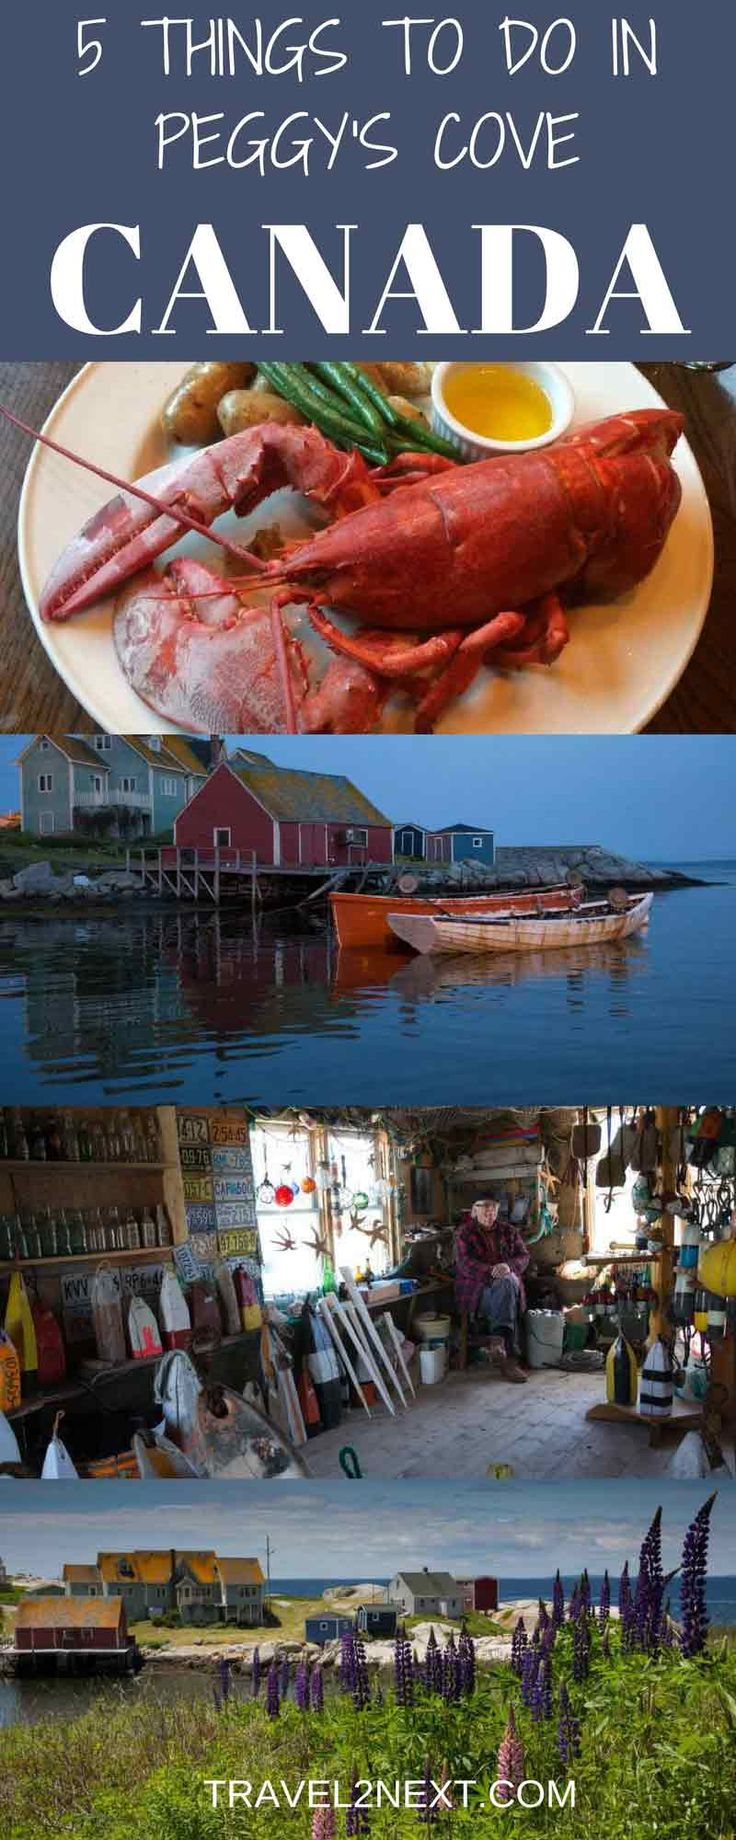 Things To Do In Peggys Cove Nova Scotia